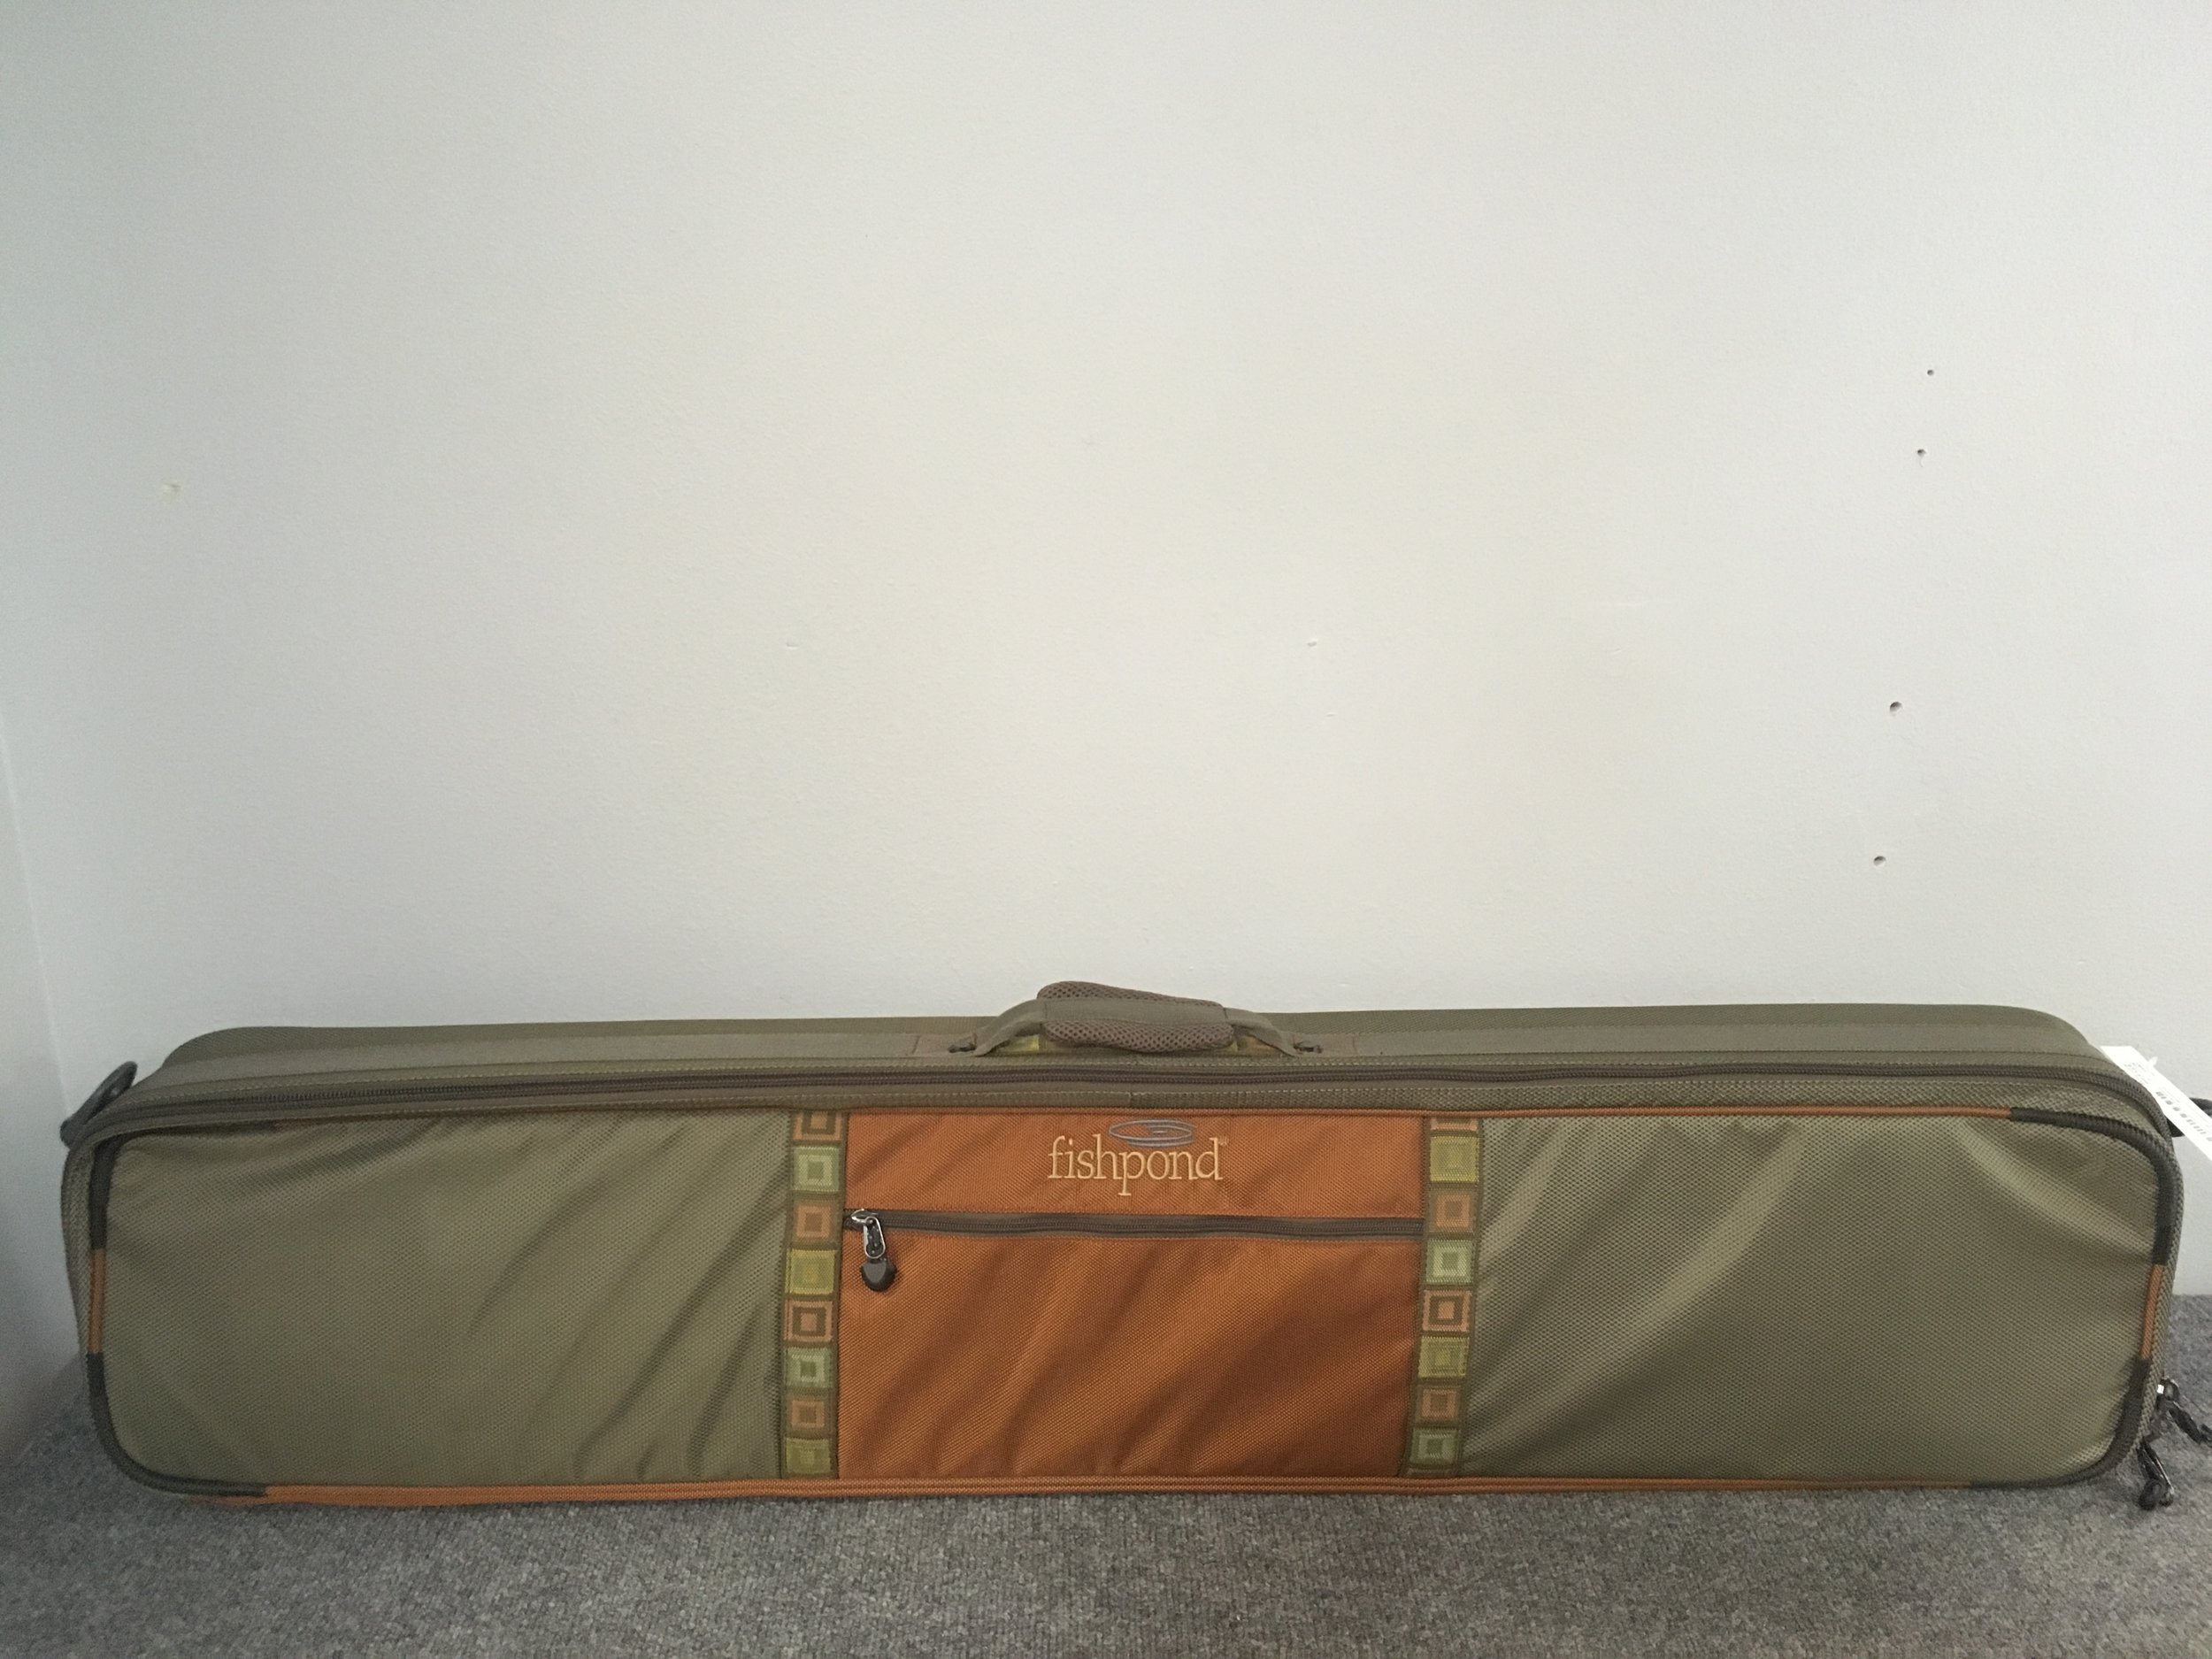 If you travel to fish you need the Fishpond Dakota Carry On Rod & Reel Case. The Dakota is designed to carry four rods and reels so you can bring all of the tools you need. Retail is listed at $200 but we can get you fishing for $112!